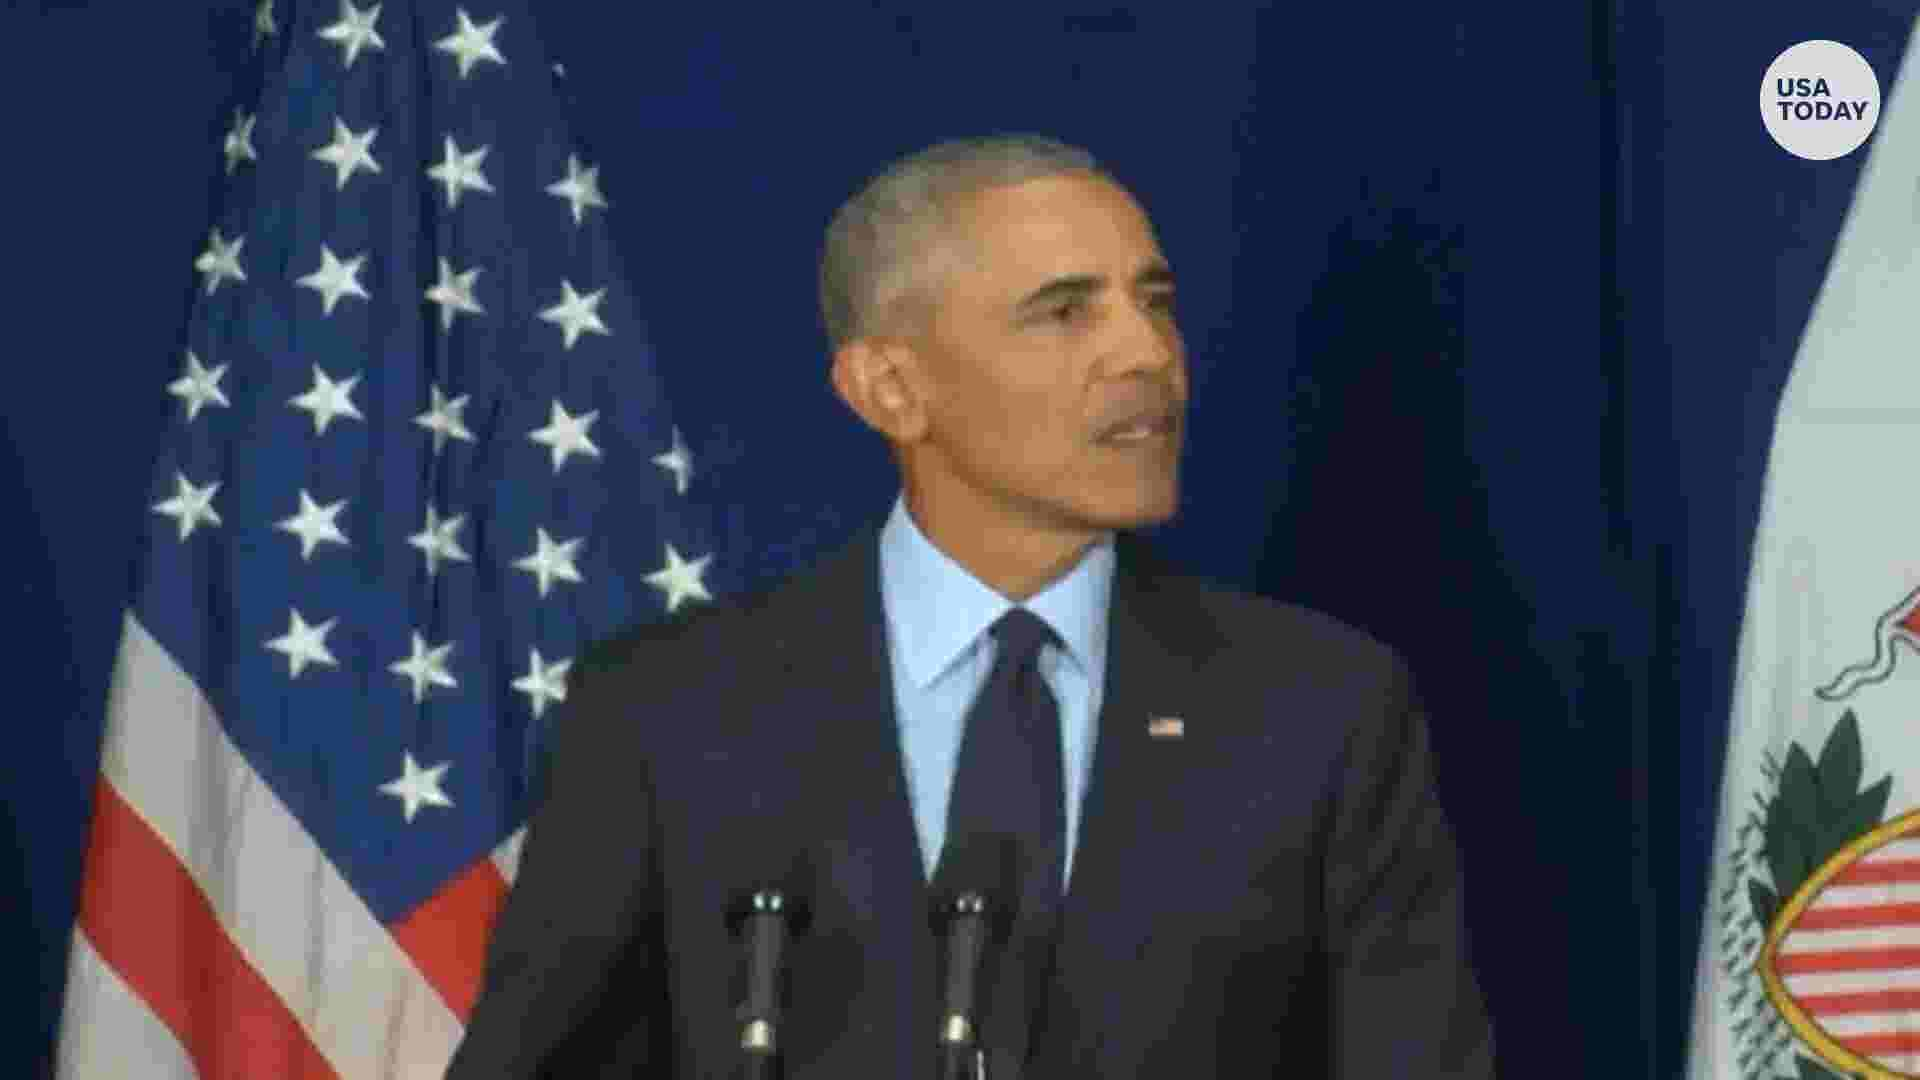 Read transcript of former President Obama s speech 0590fb4a2